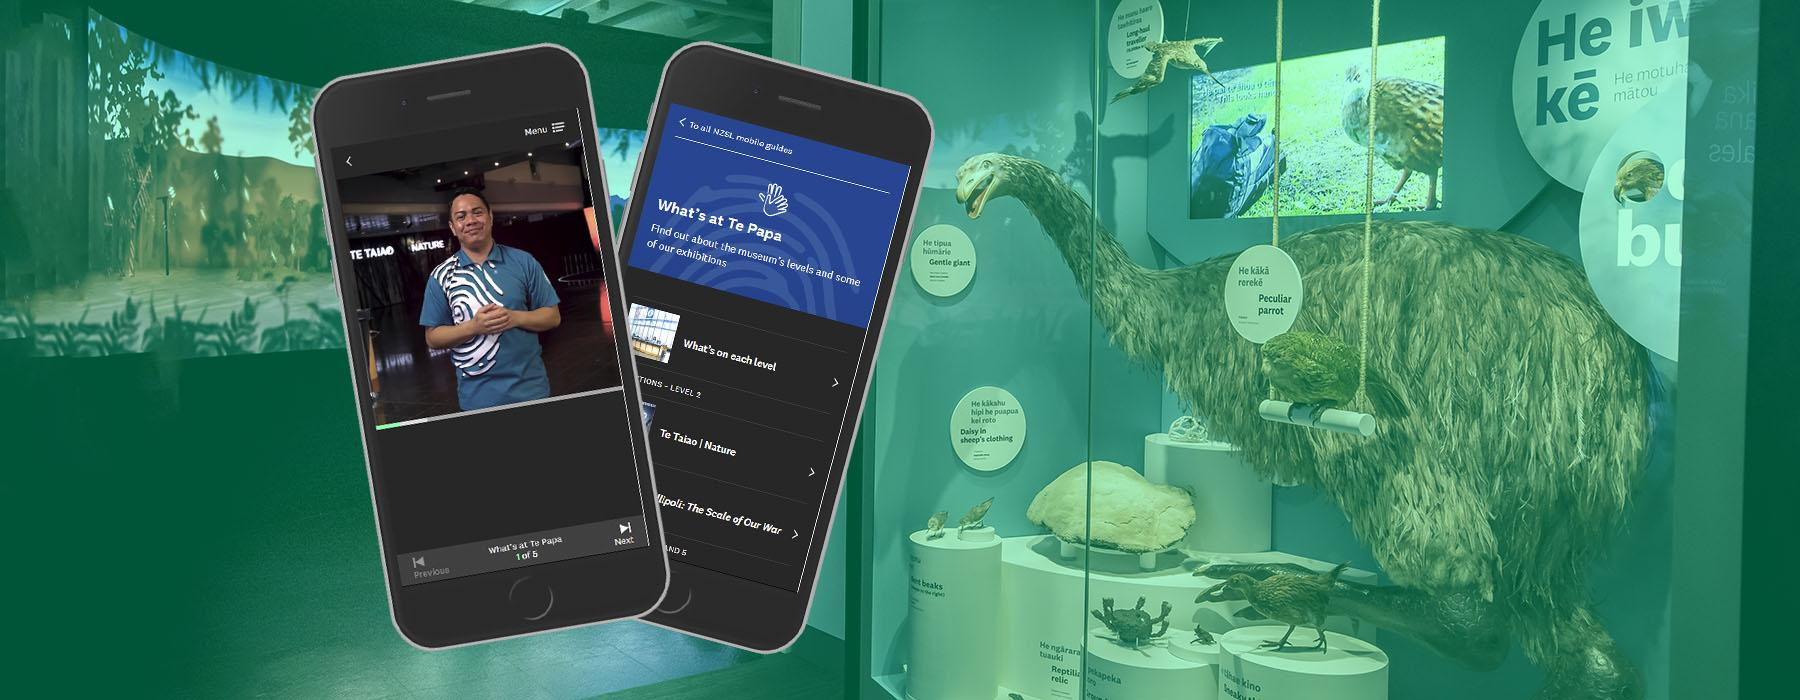 View of the entrance area of Te Taiao Nature, with a moa in a case on the right and a large projected animation on the left. Two phones are superimposed on top displaying the mobile guide